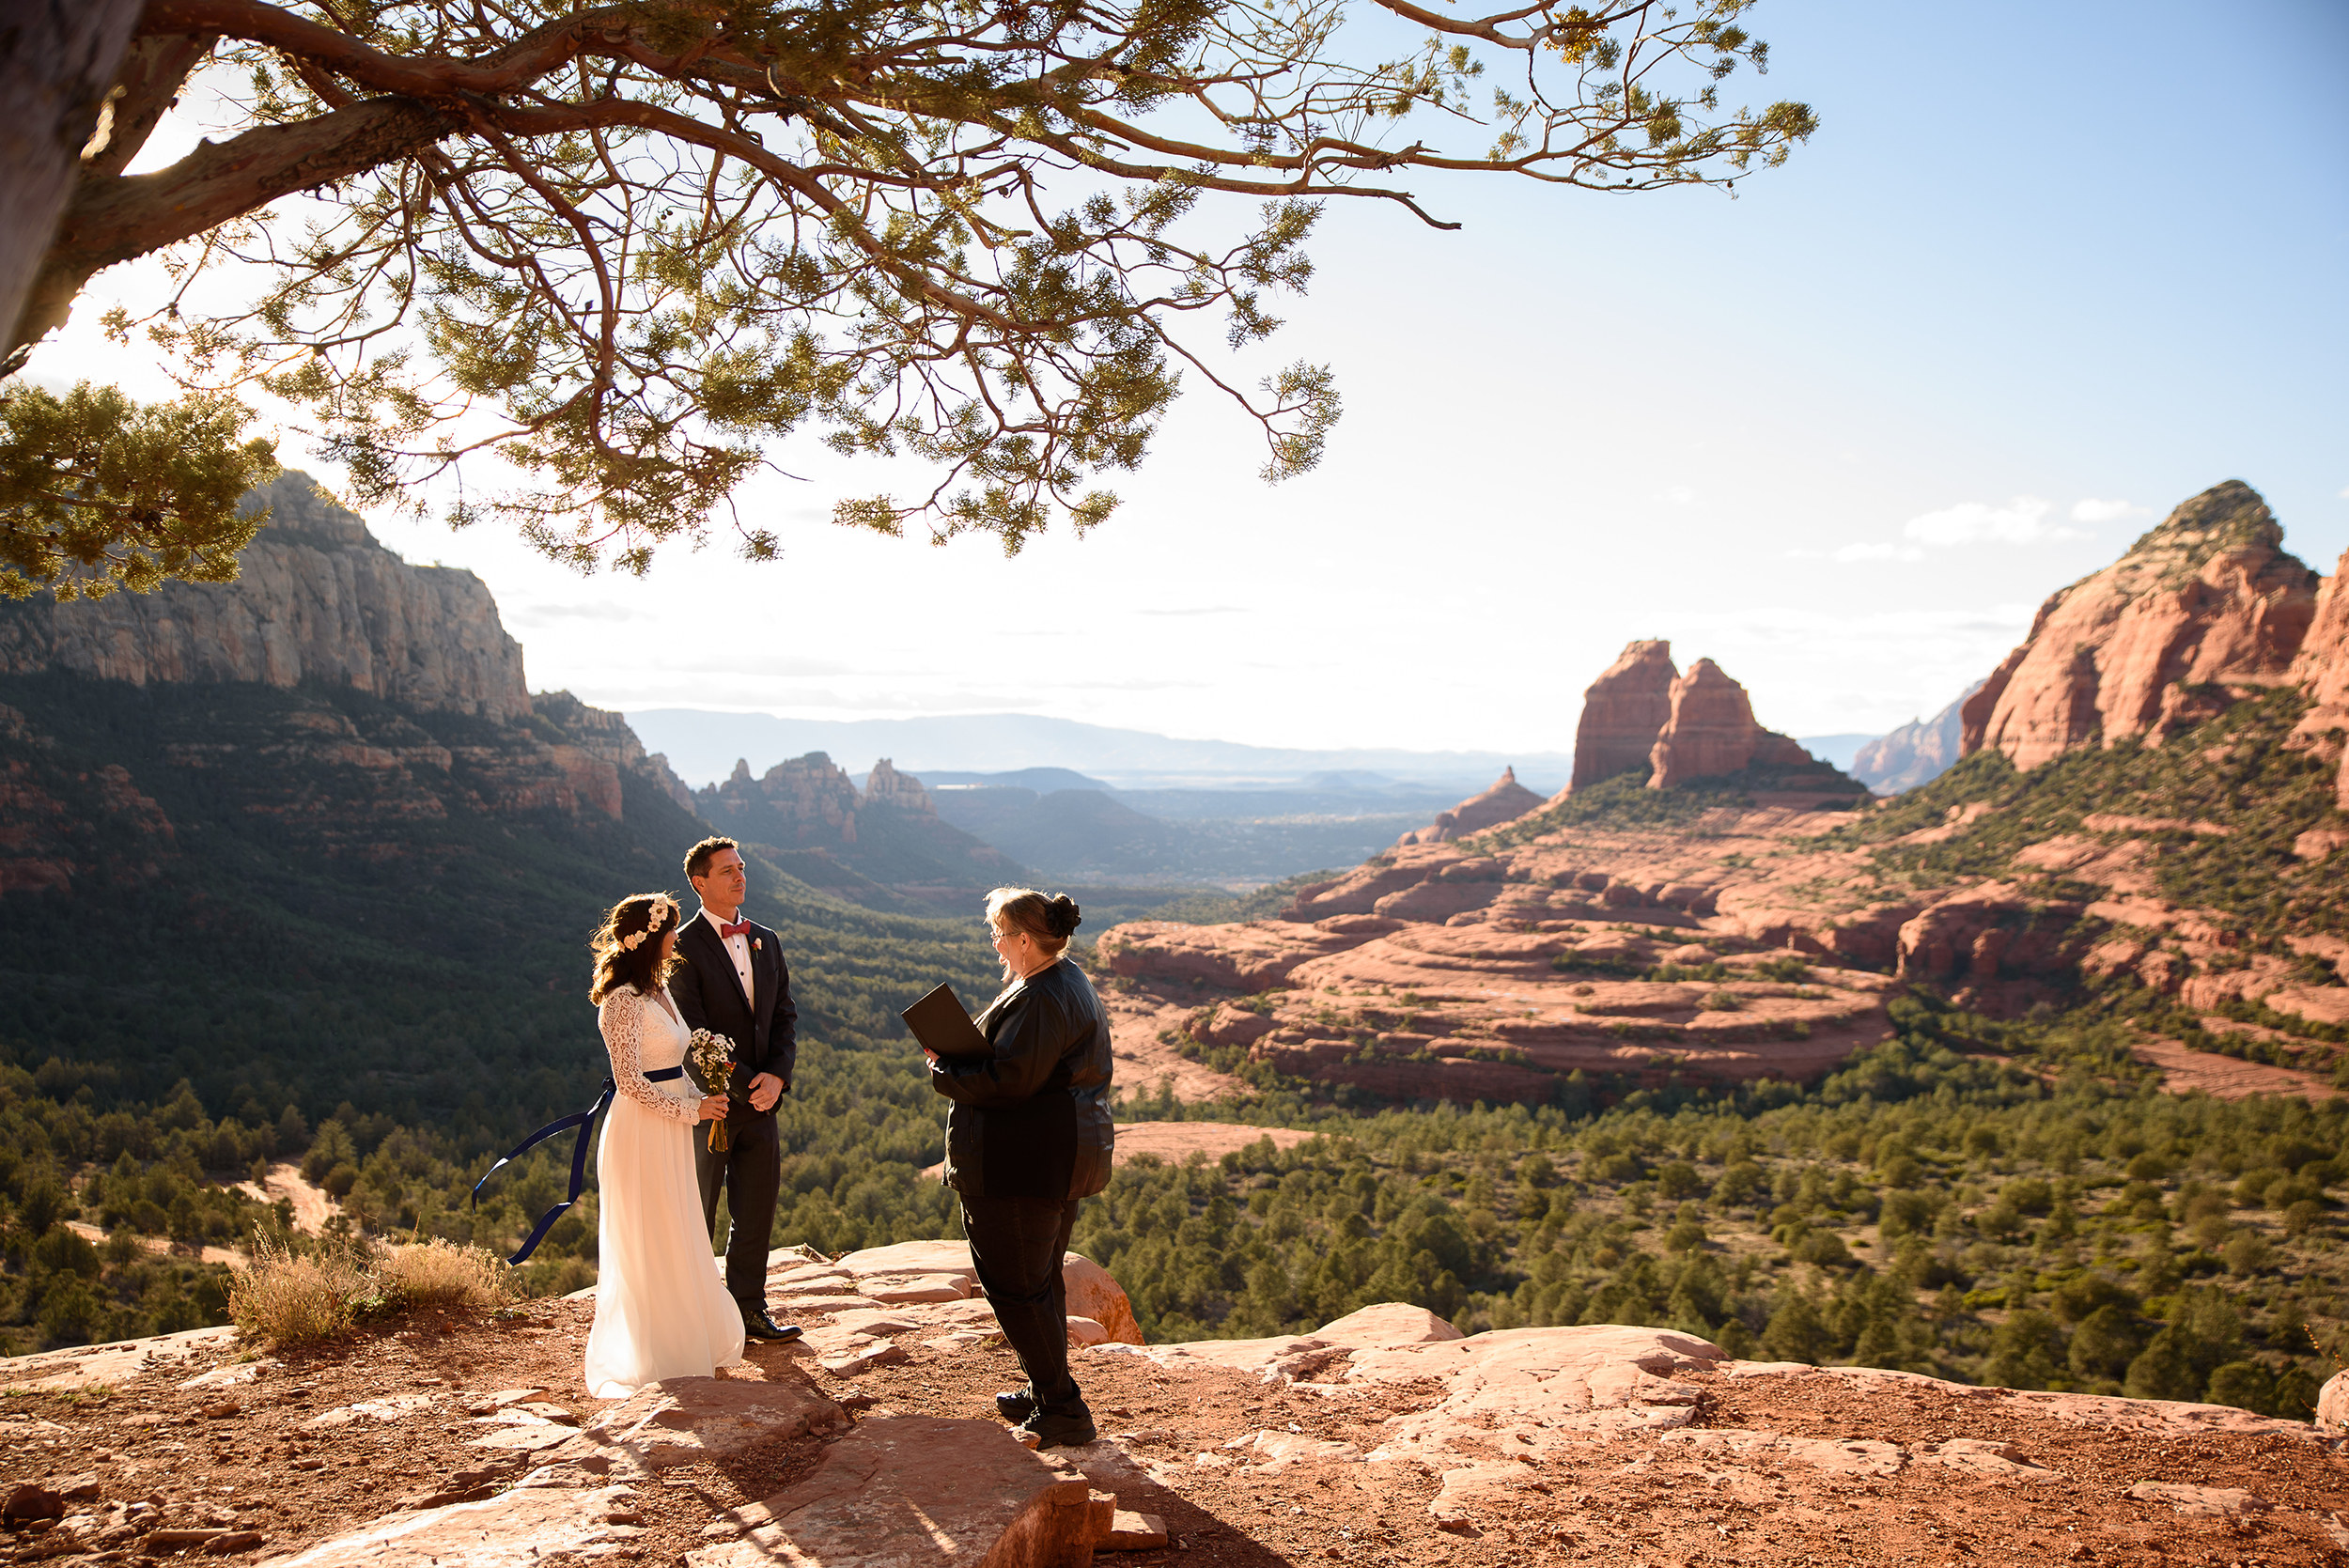 Paris Sedona Wedding 12/2018